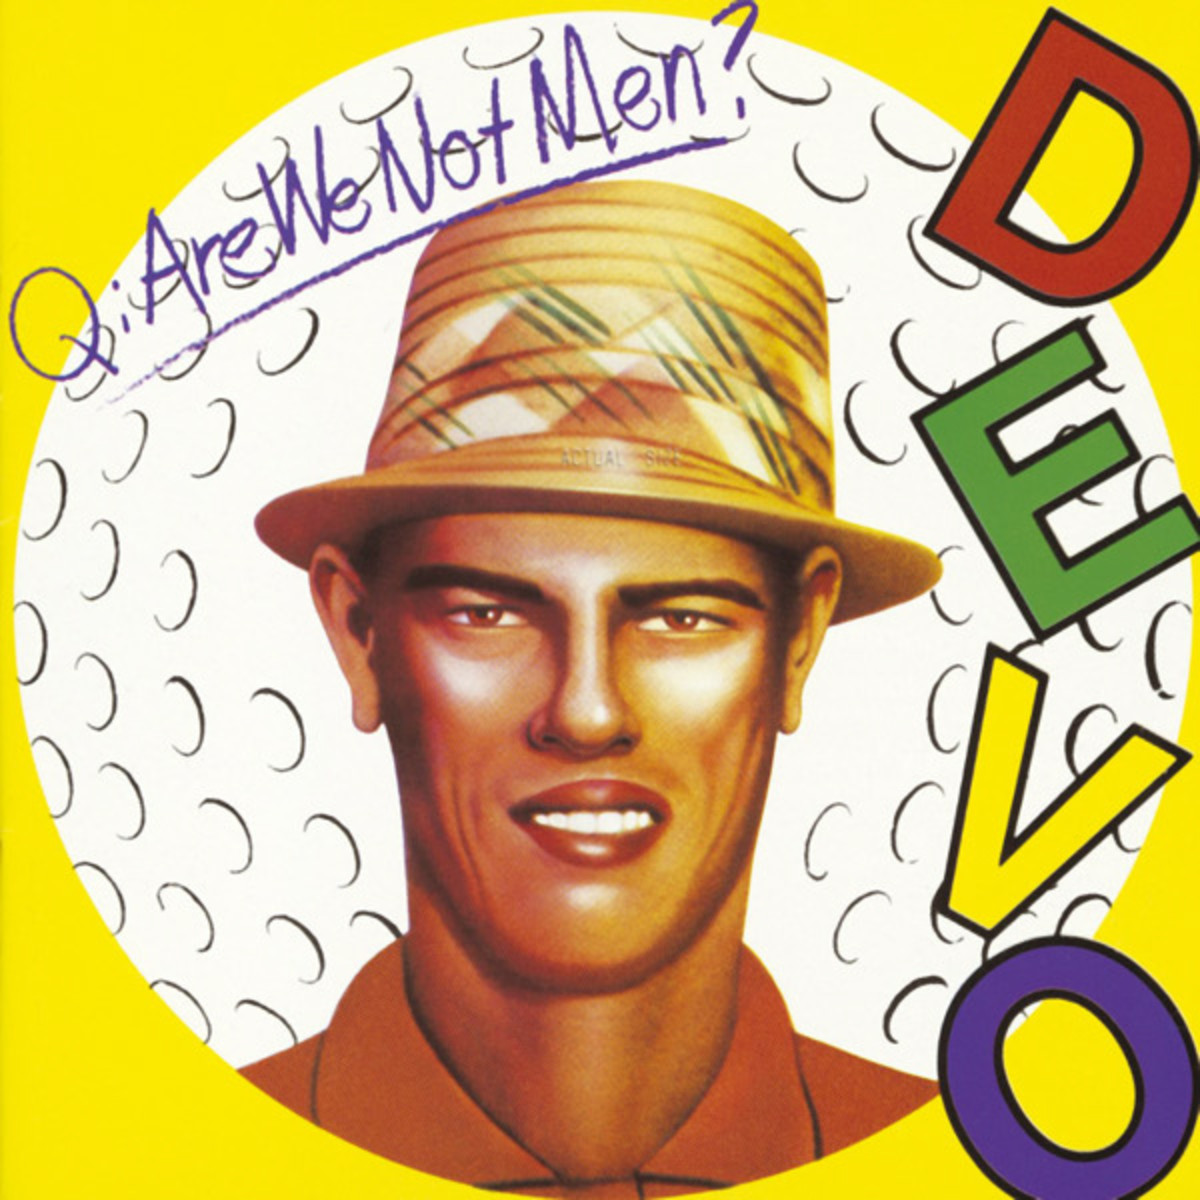 Chi Chi Rodriguez image on the cover of Devo's 1978 debut album, Q: Are We Not Men? A: We are Devo!